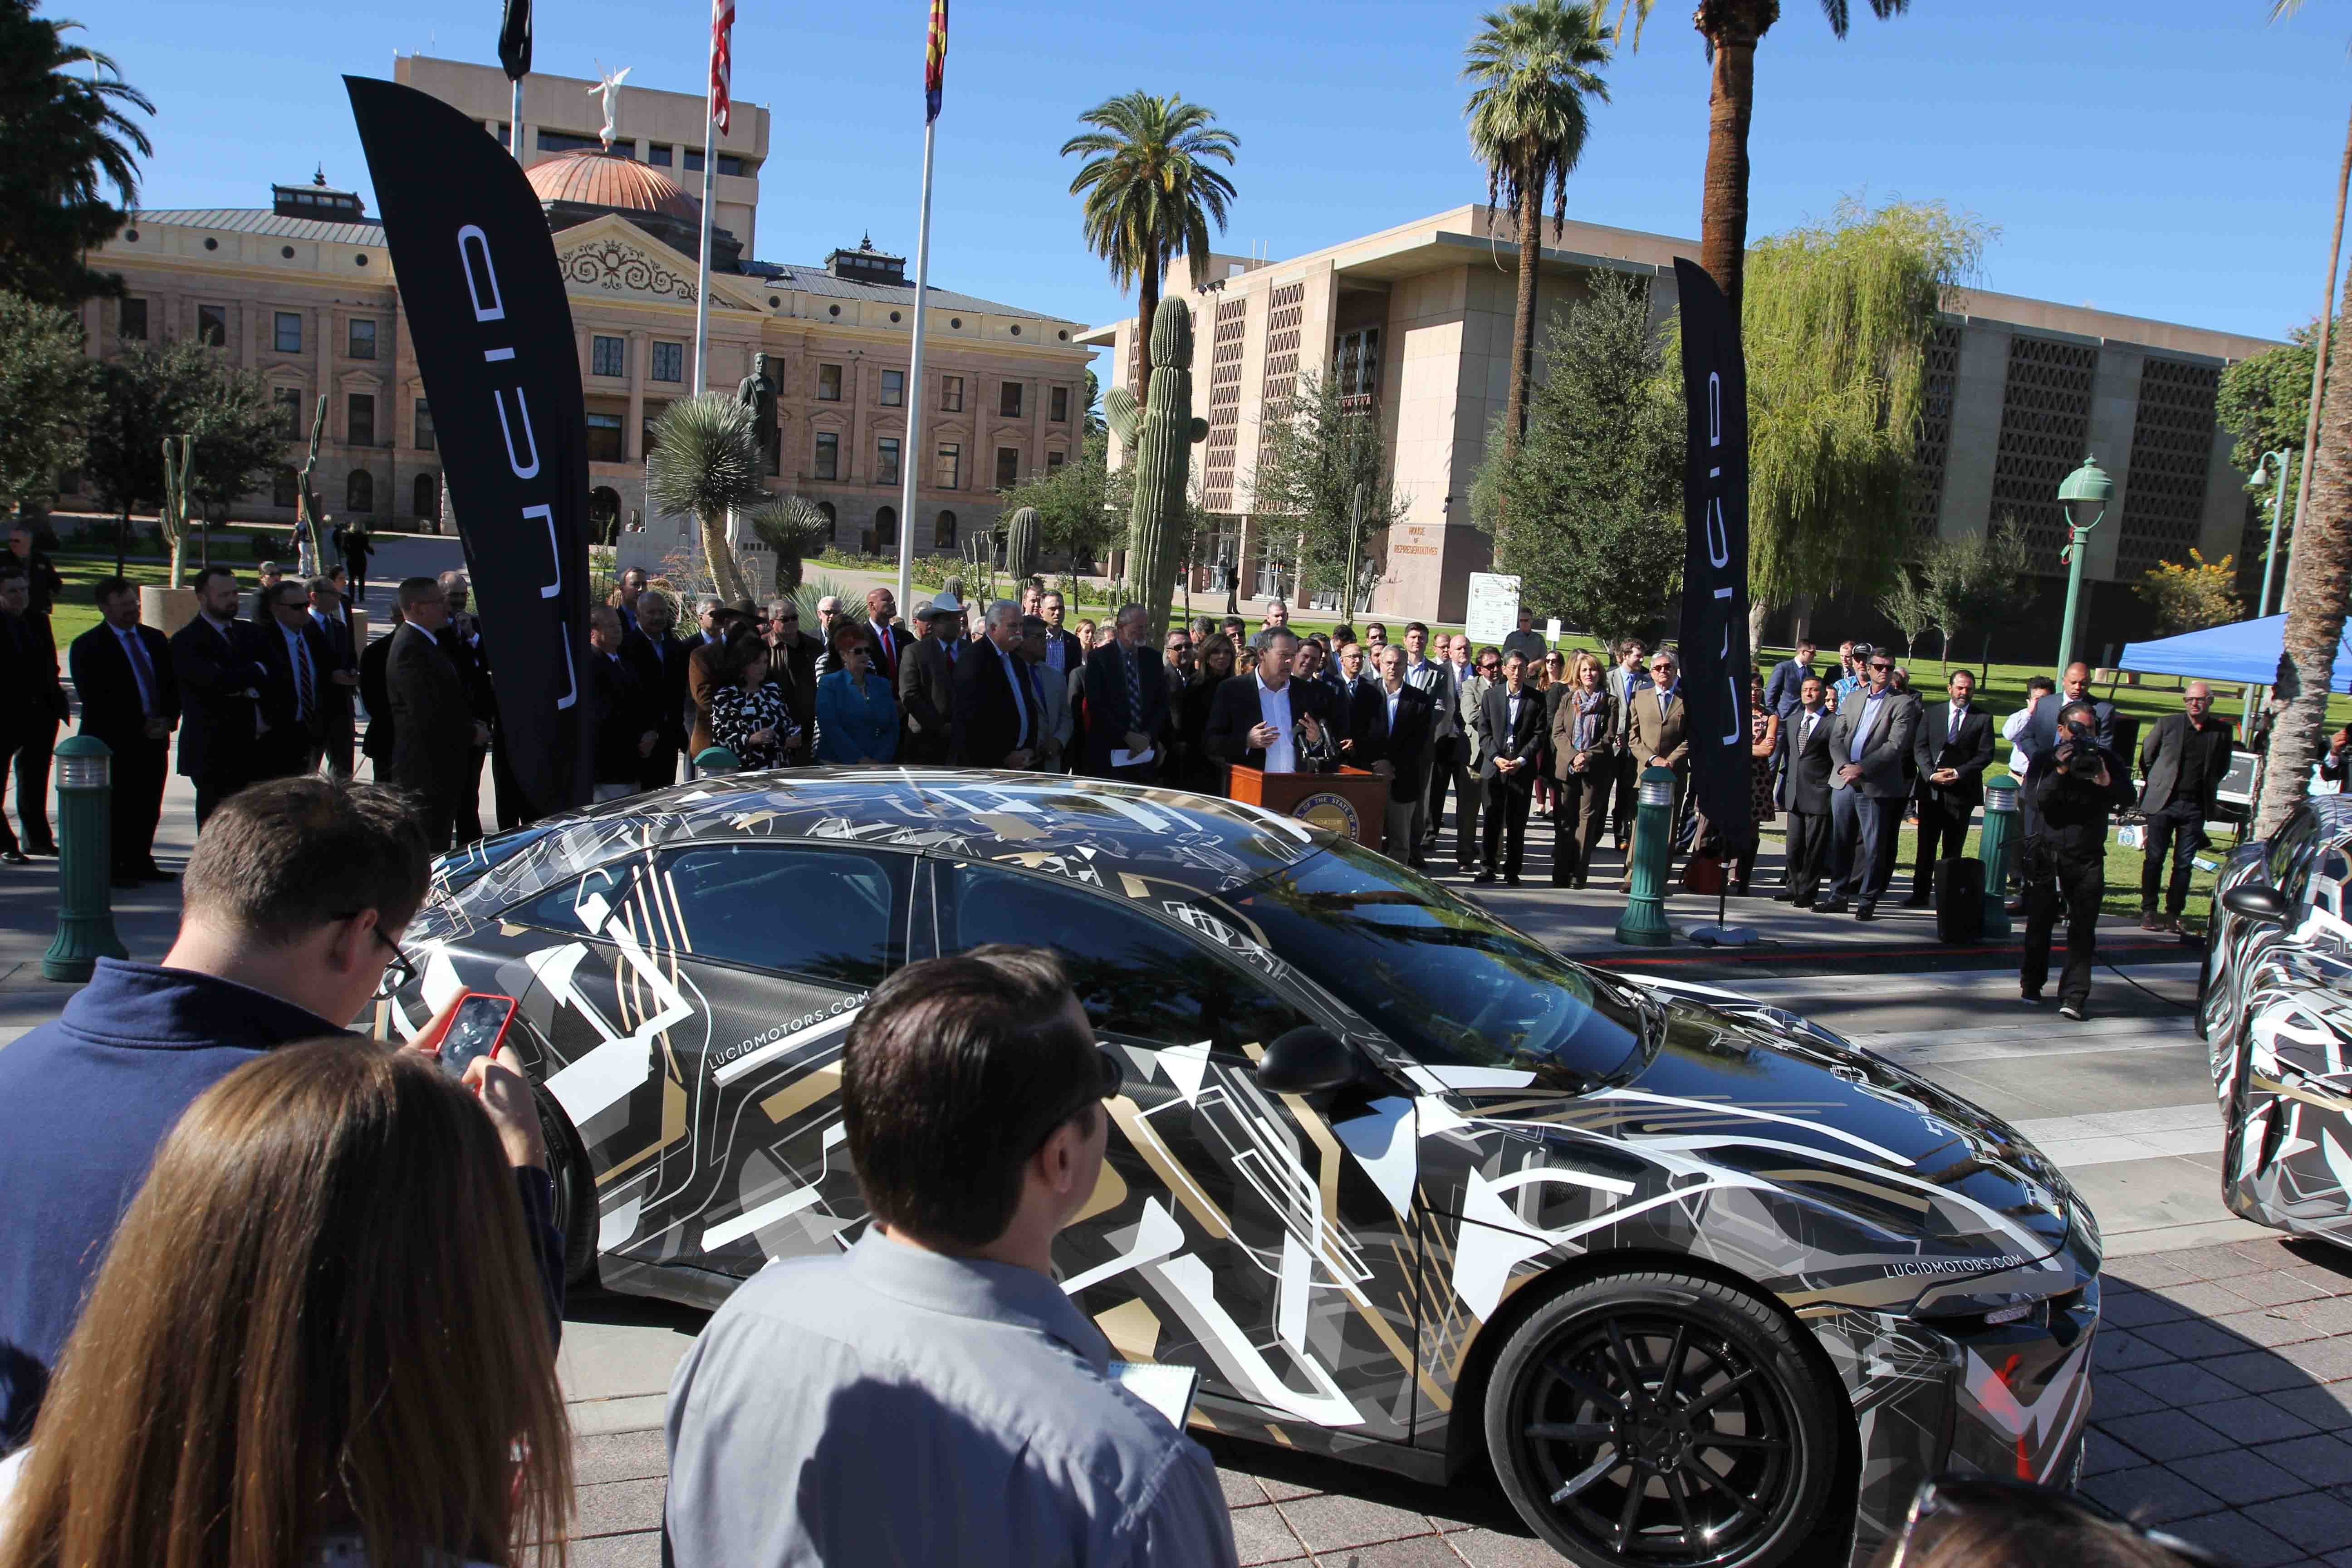 The Second 2 000 Arizona Jobs Announcement In Two Weeks Lucid S Decision To Build Their Innovative Vehicles Casa Grande Shows Economic